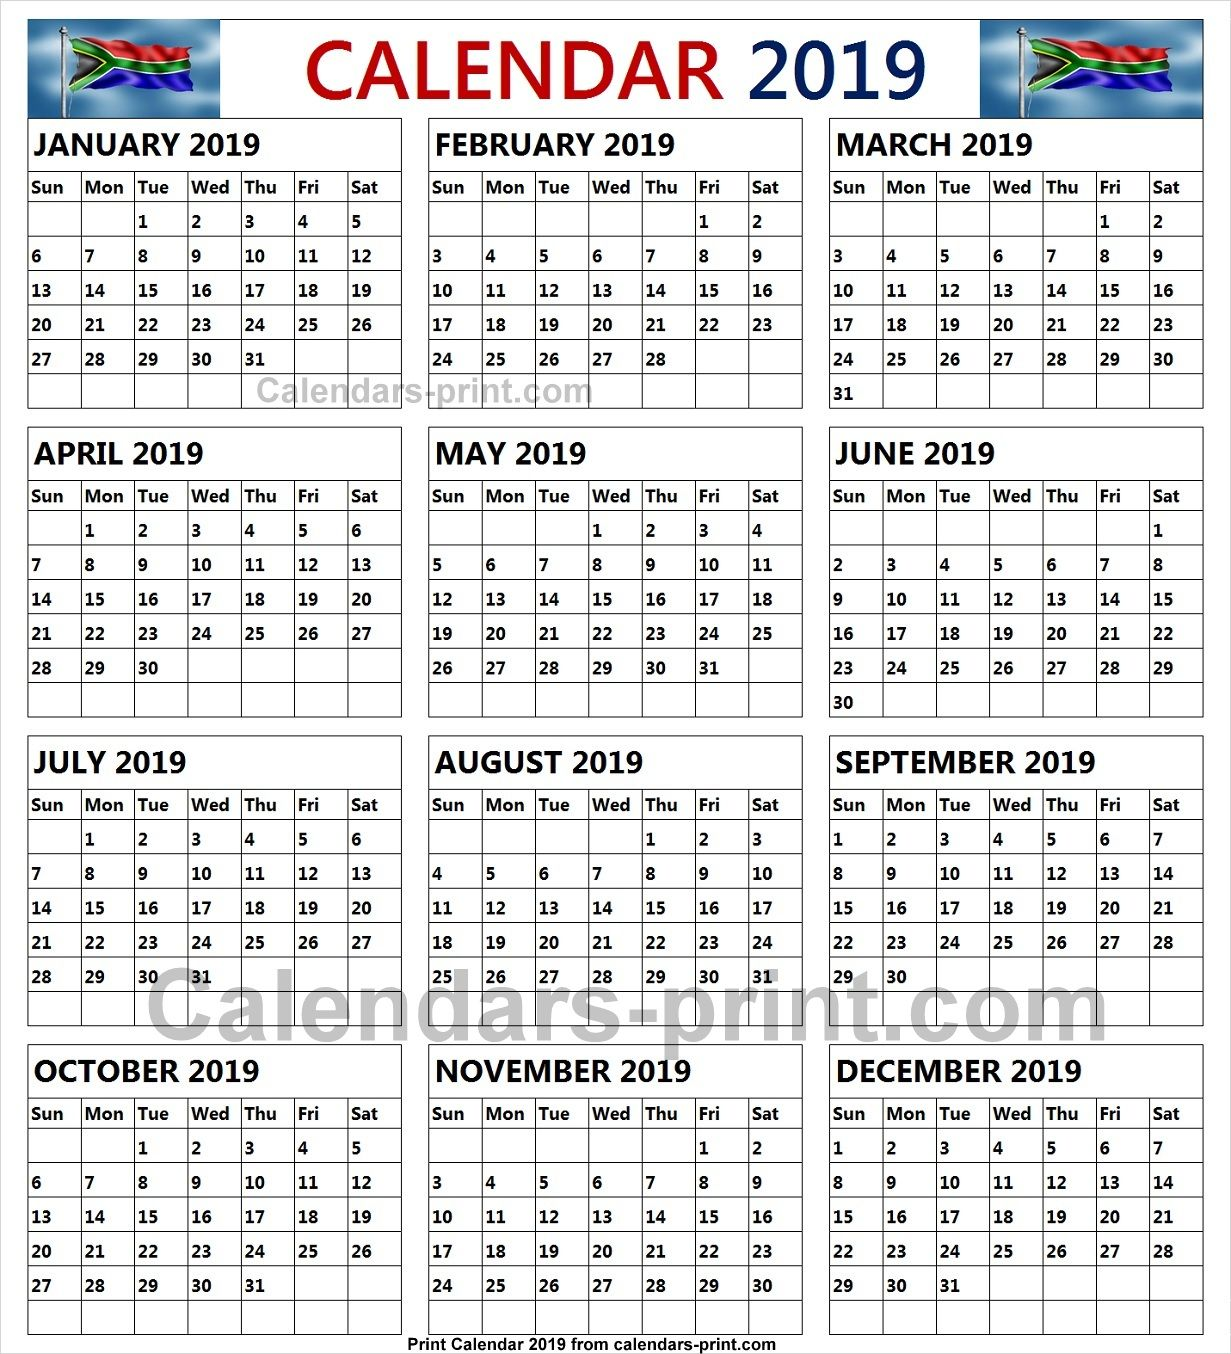 2019 South African Calendar With Public Holidays School Holiday Calendar School Calendar Print Calendar